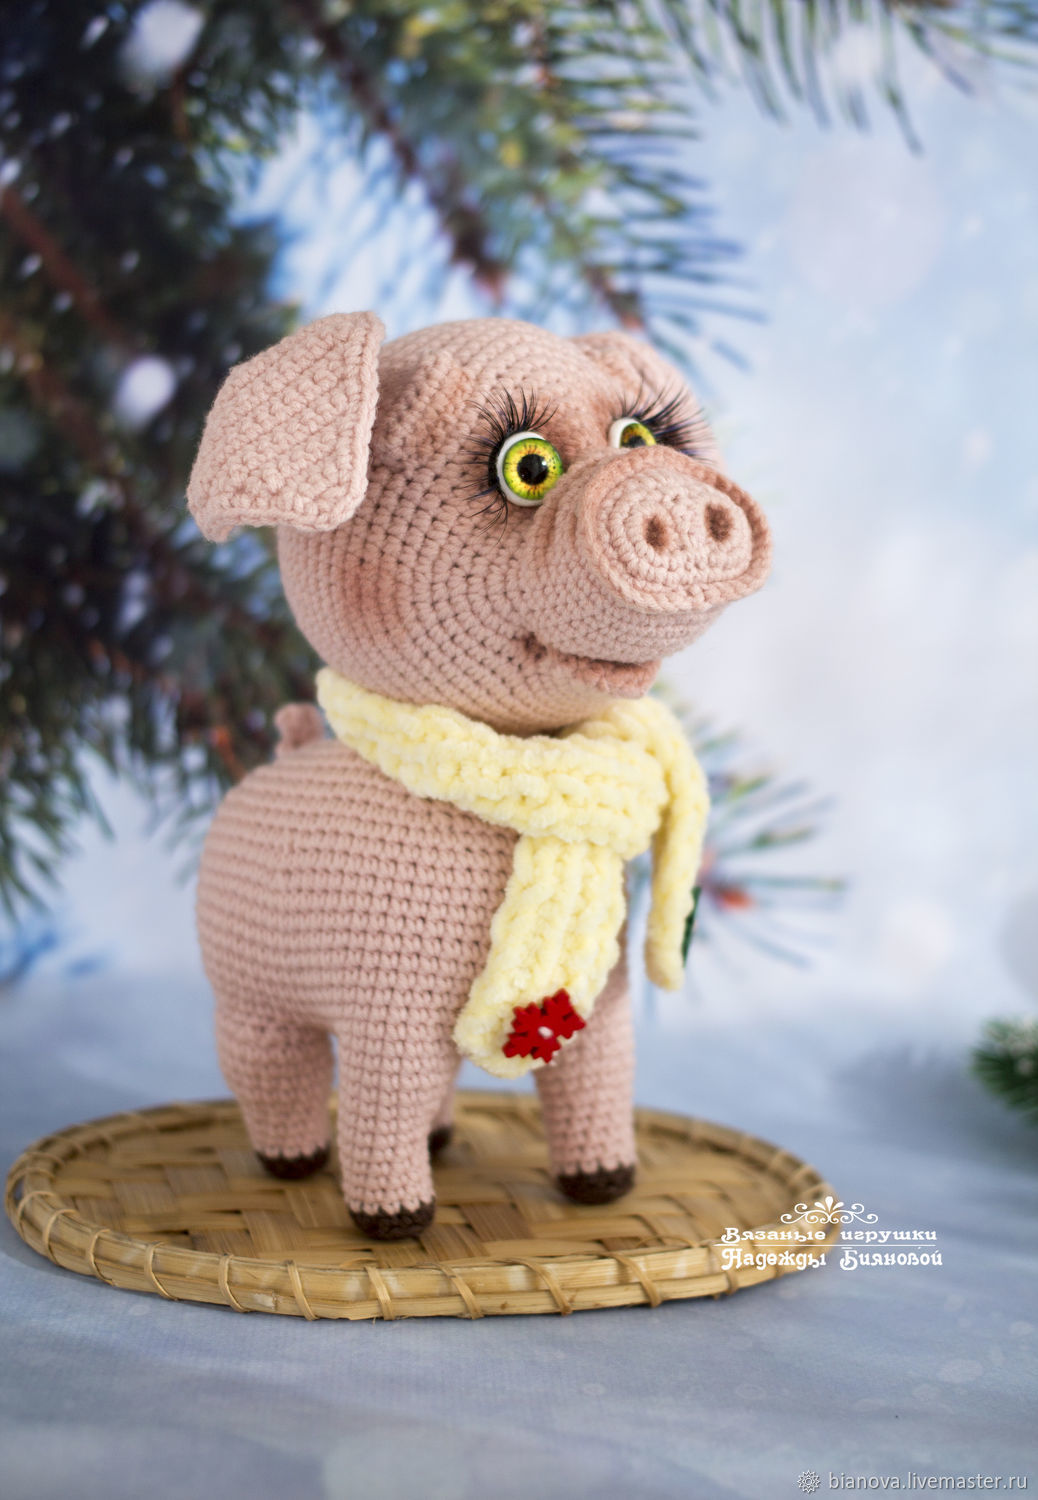 Pig Knitted Gift 17cm Shop Online On Livemaster With Shipping